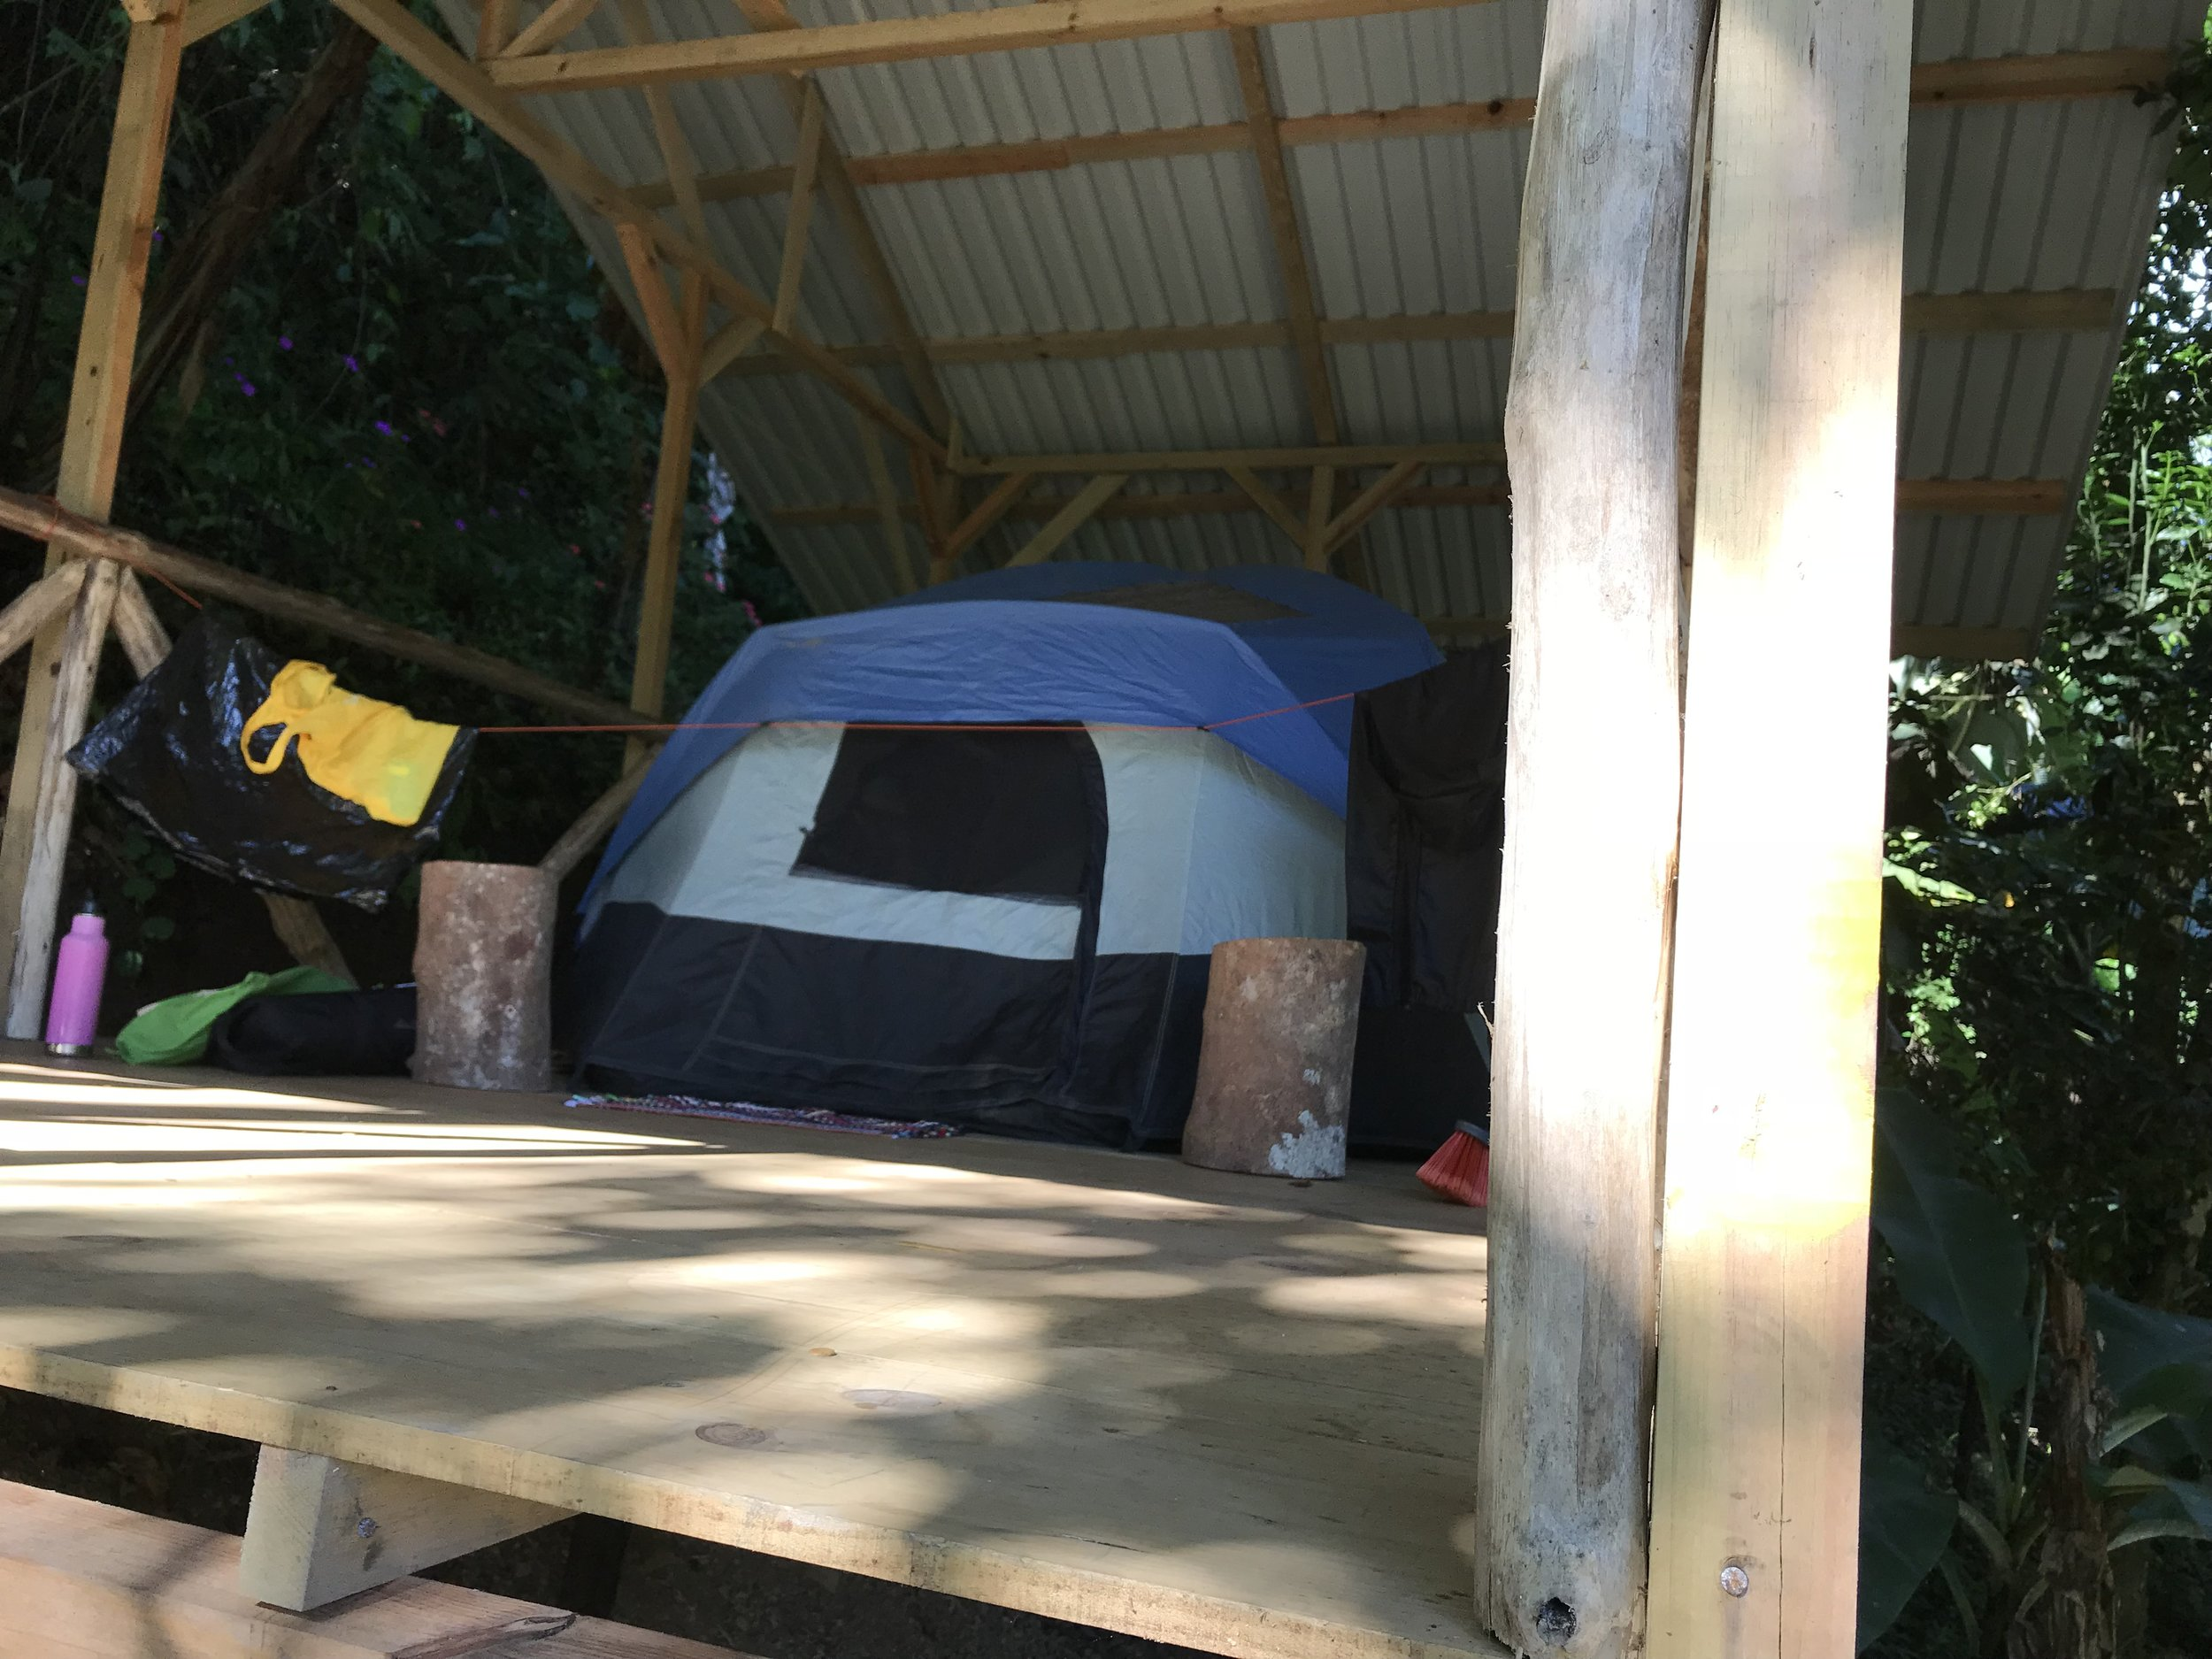 ECONOMY PACKAGE: Platform #3 holds 4 Campers in 2 Tents; $140/week for each camper, ( ¢78,700 colones). Bring you own Tents; (Gear, Meals Hikes, Transportation are not included.)(We can also rent Tents.)